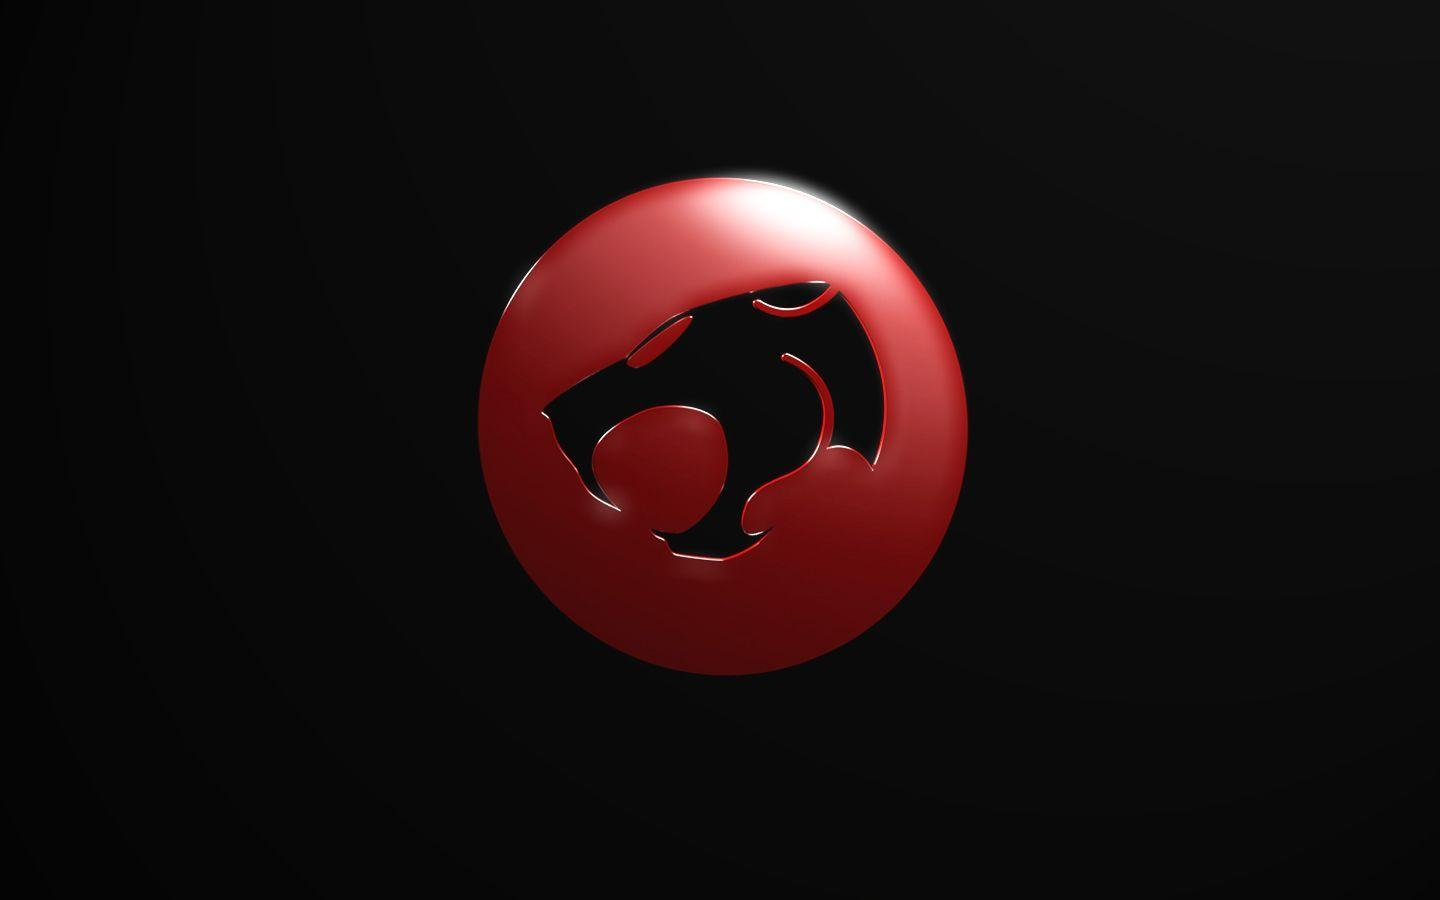 Full Hd Cars Wallpapers For Pc Thundercats Logo Wallpapers Wallpaper Cave